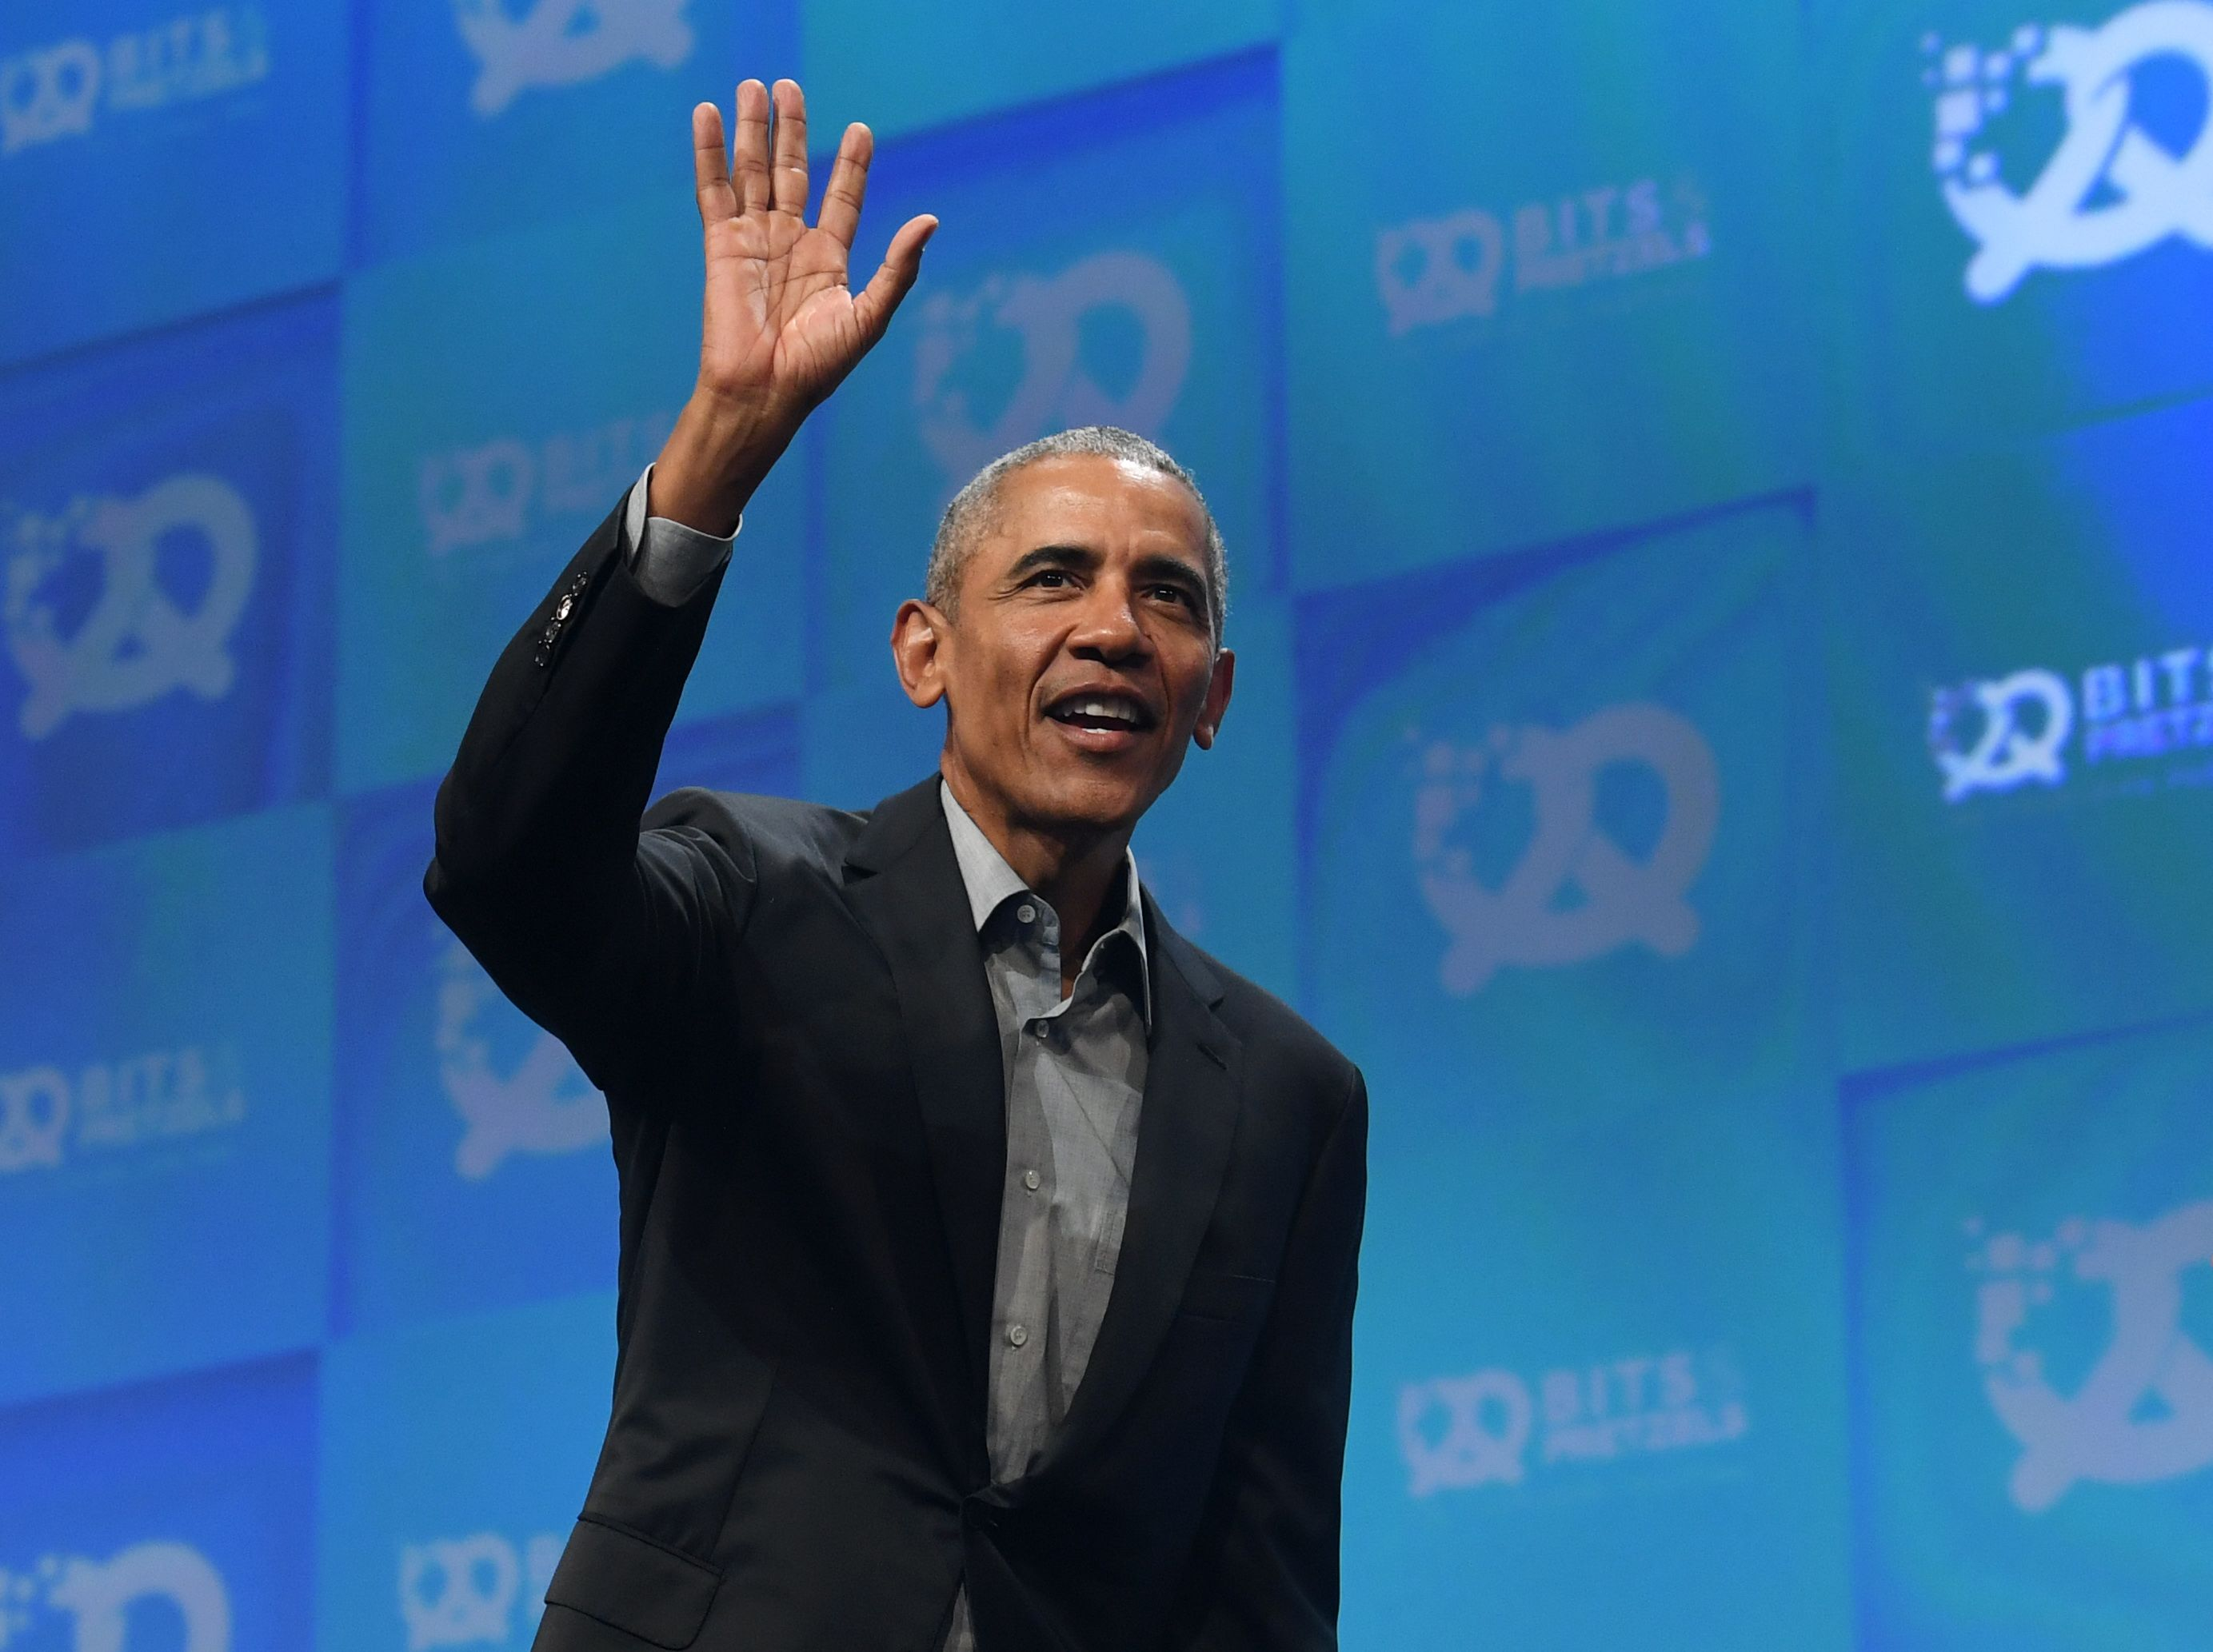 Barack Obama Is Still Dressing More Presidential Than The Current President